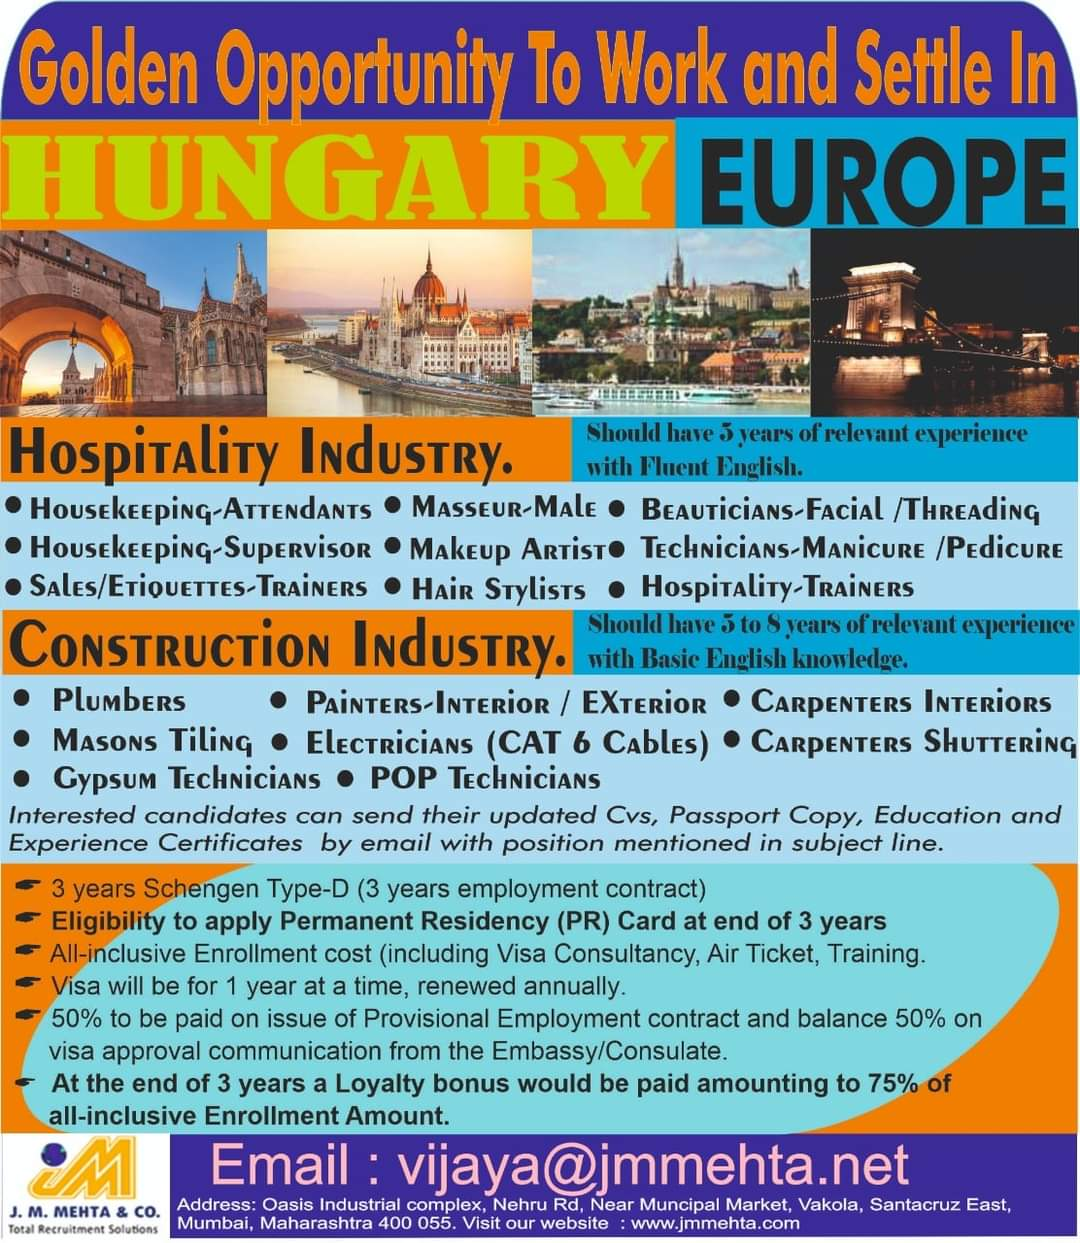 WALK-IN INTERVIEW AT MUMBAI IN HOSPITALITY AND CONSTRUCTION INDUSTRY